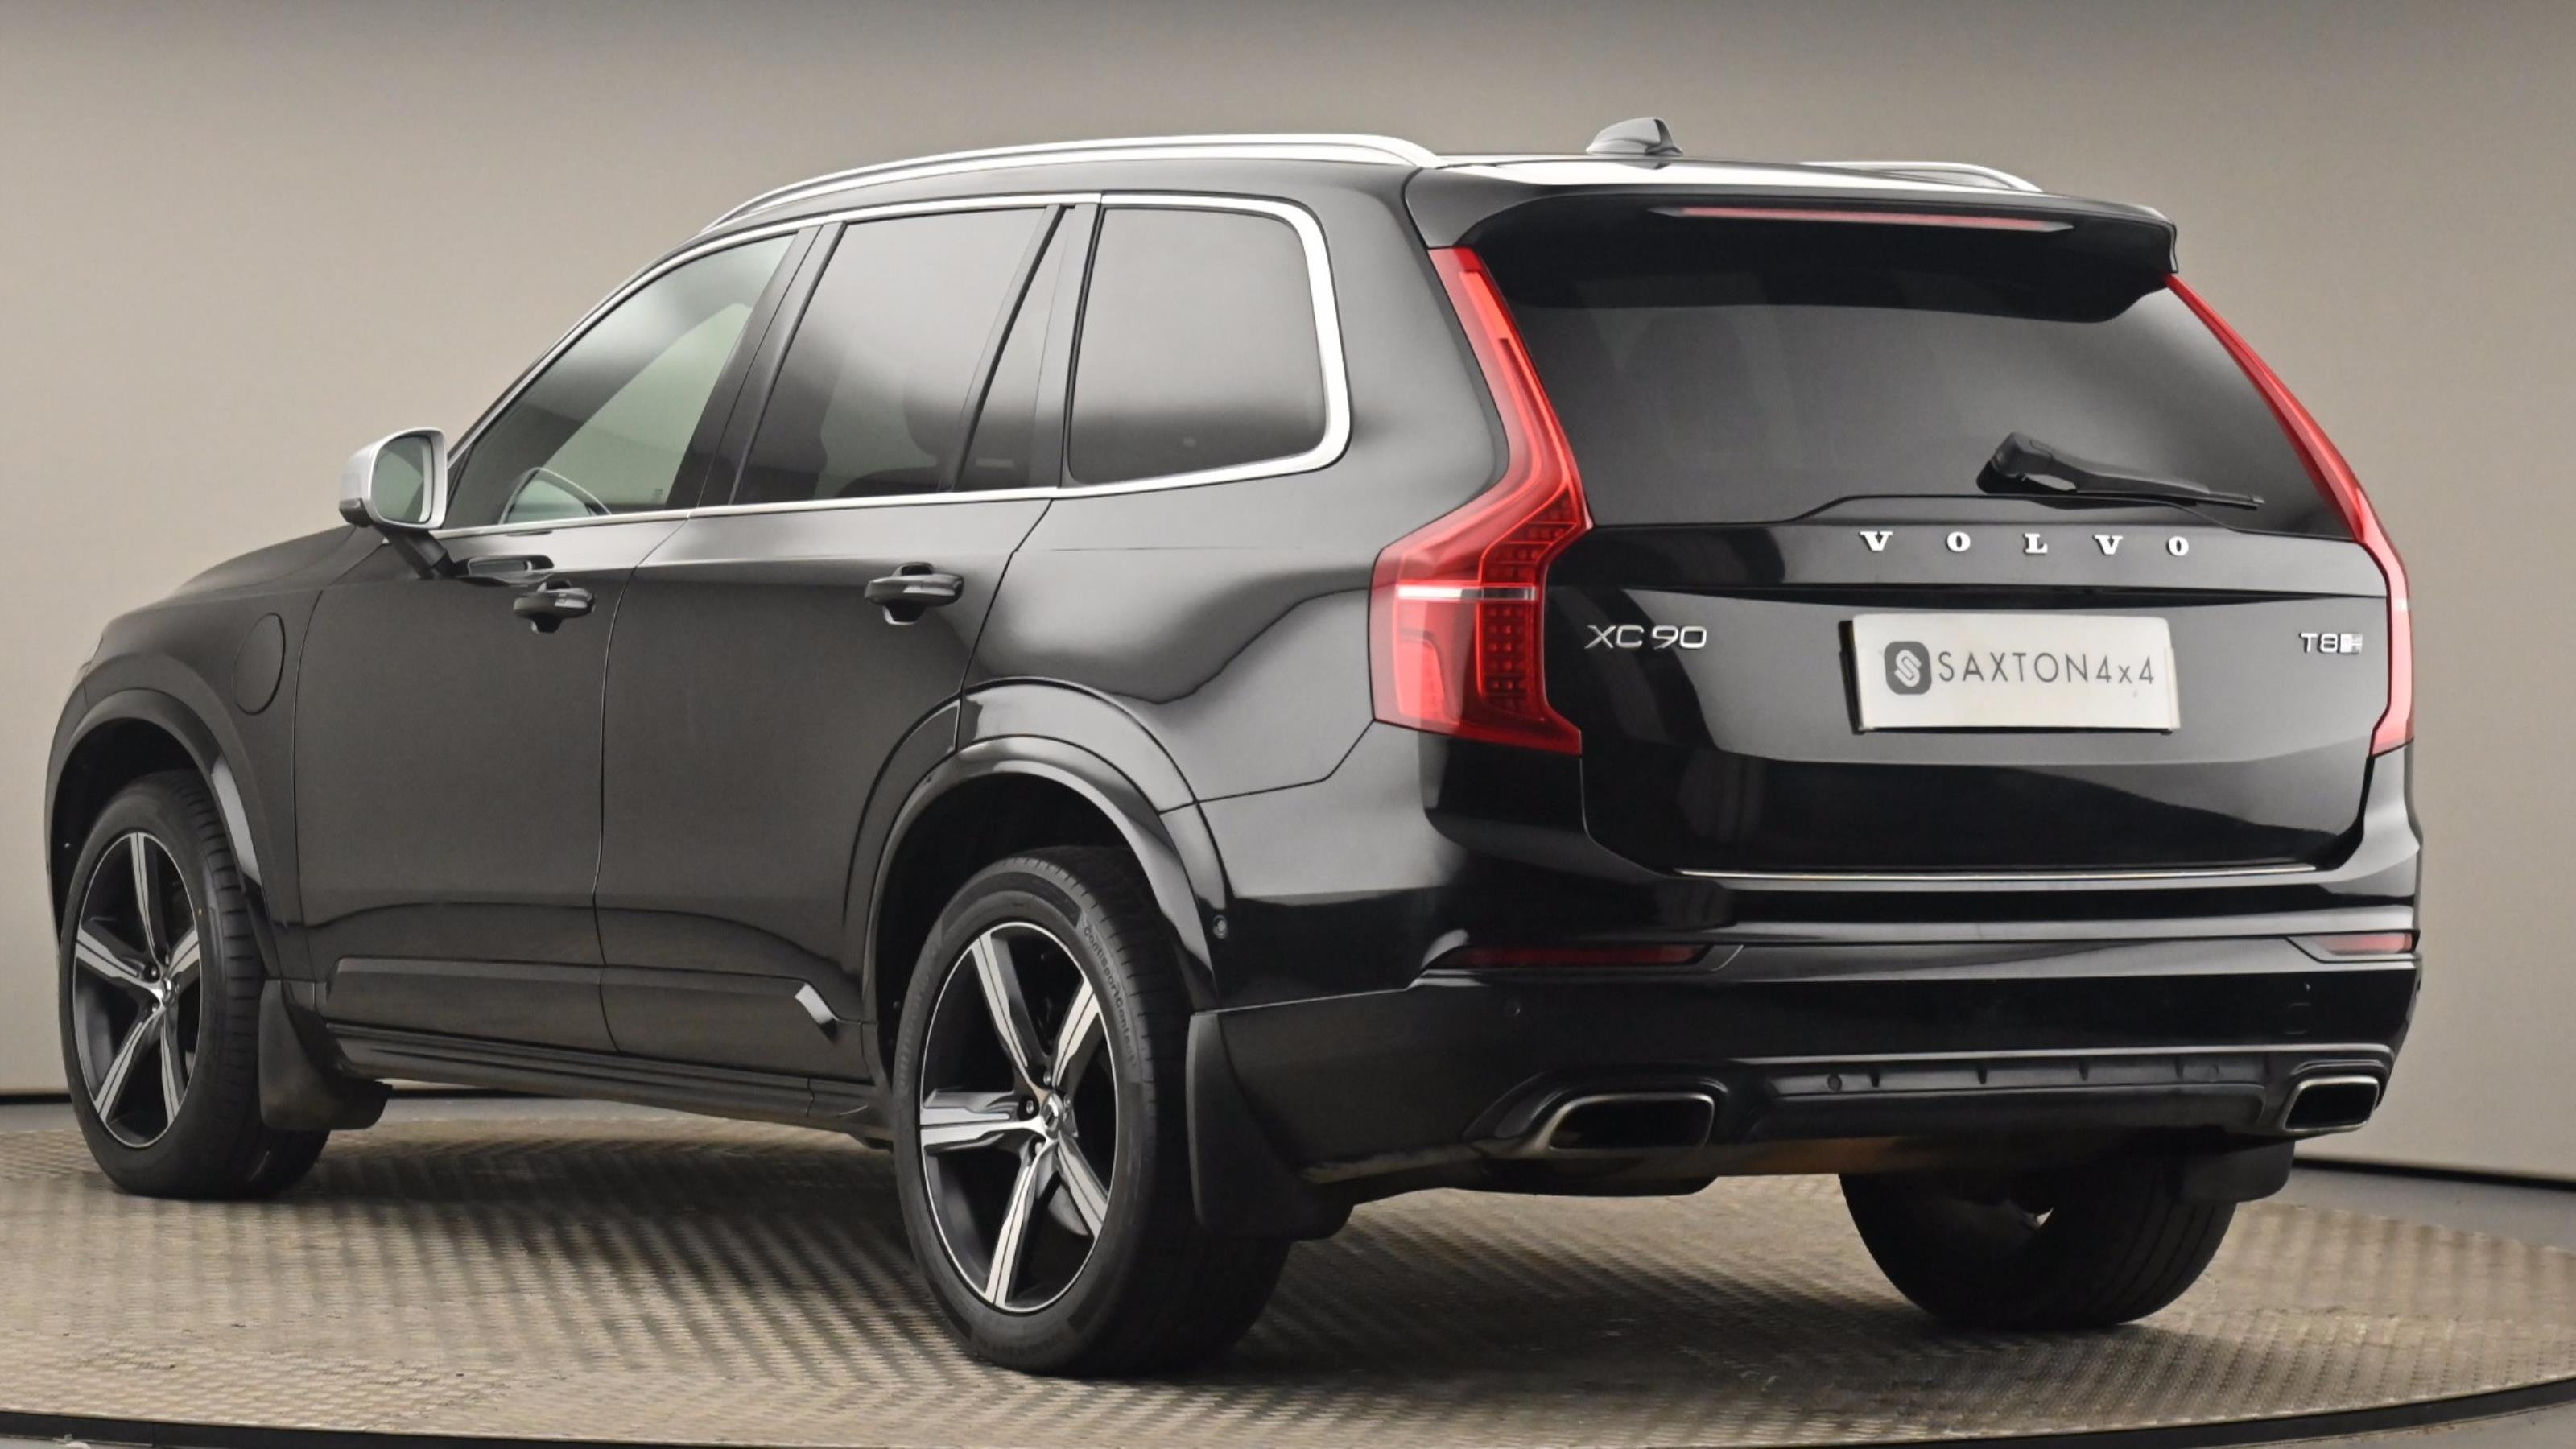 Used 2016 Volvo XC90 2.0 T8 Hybrid R DESIGN 5dr Geartronic BLACK at Saxton4x4